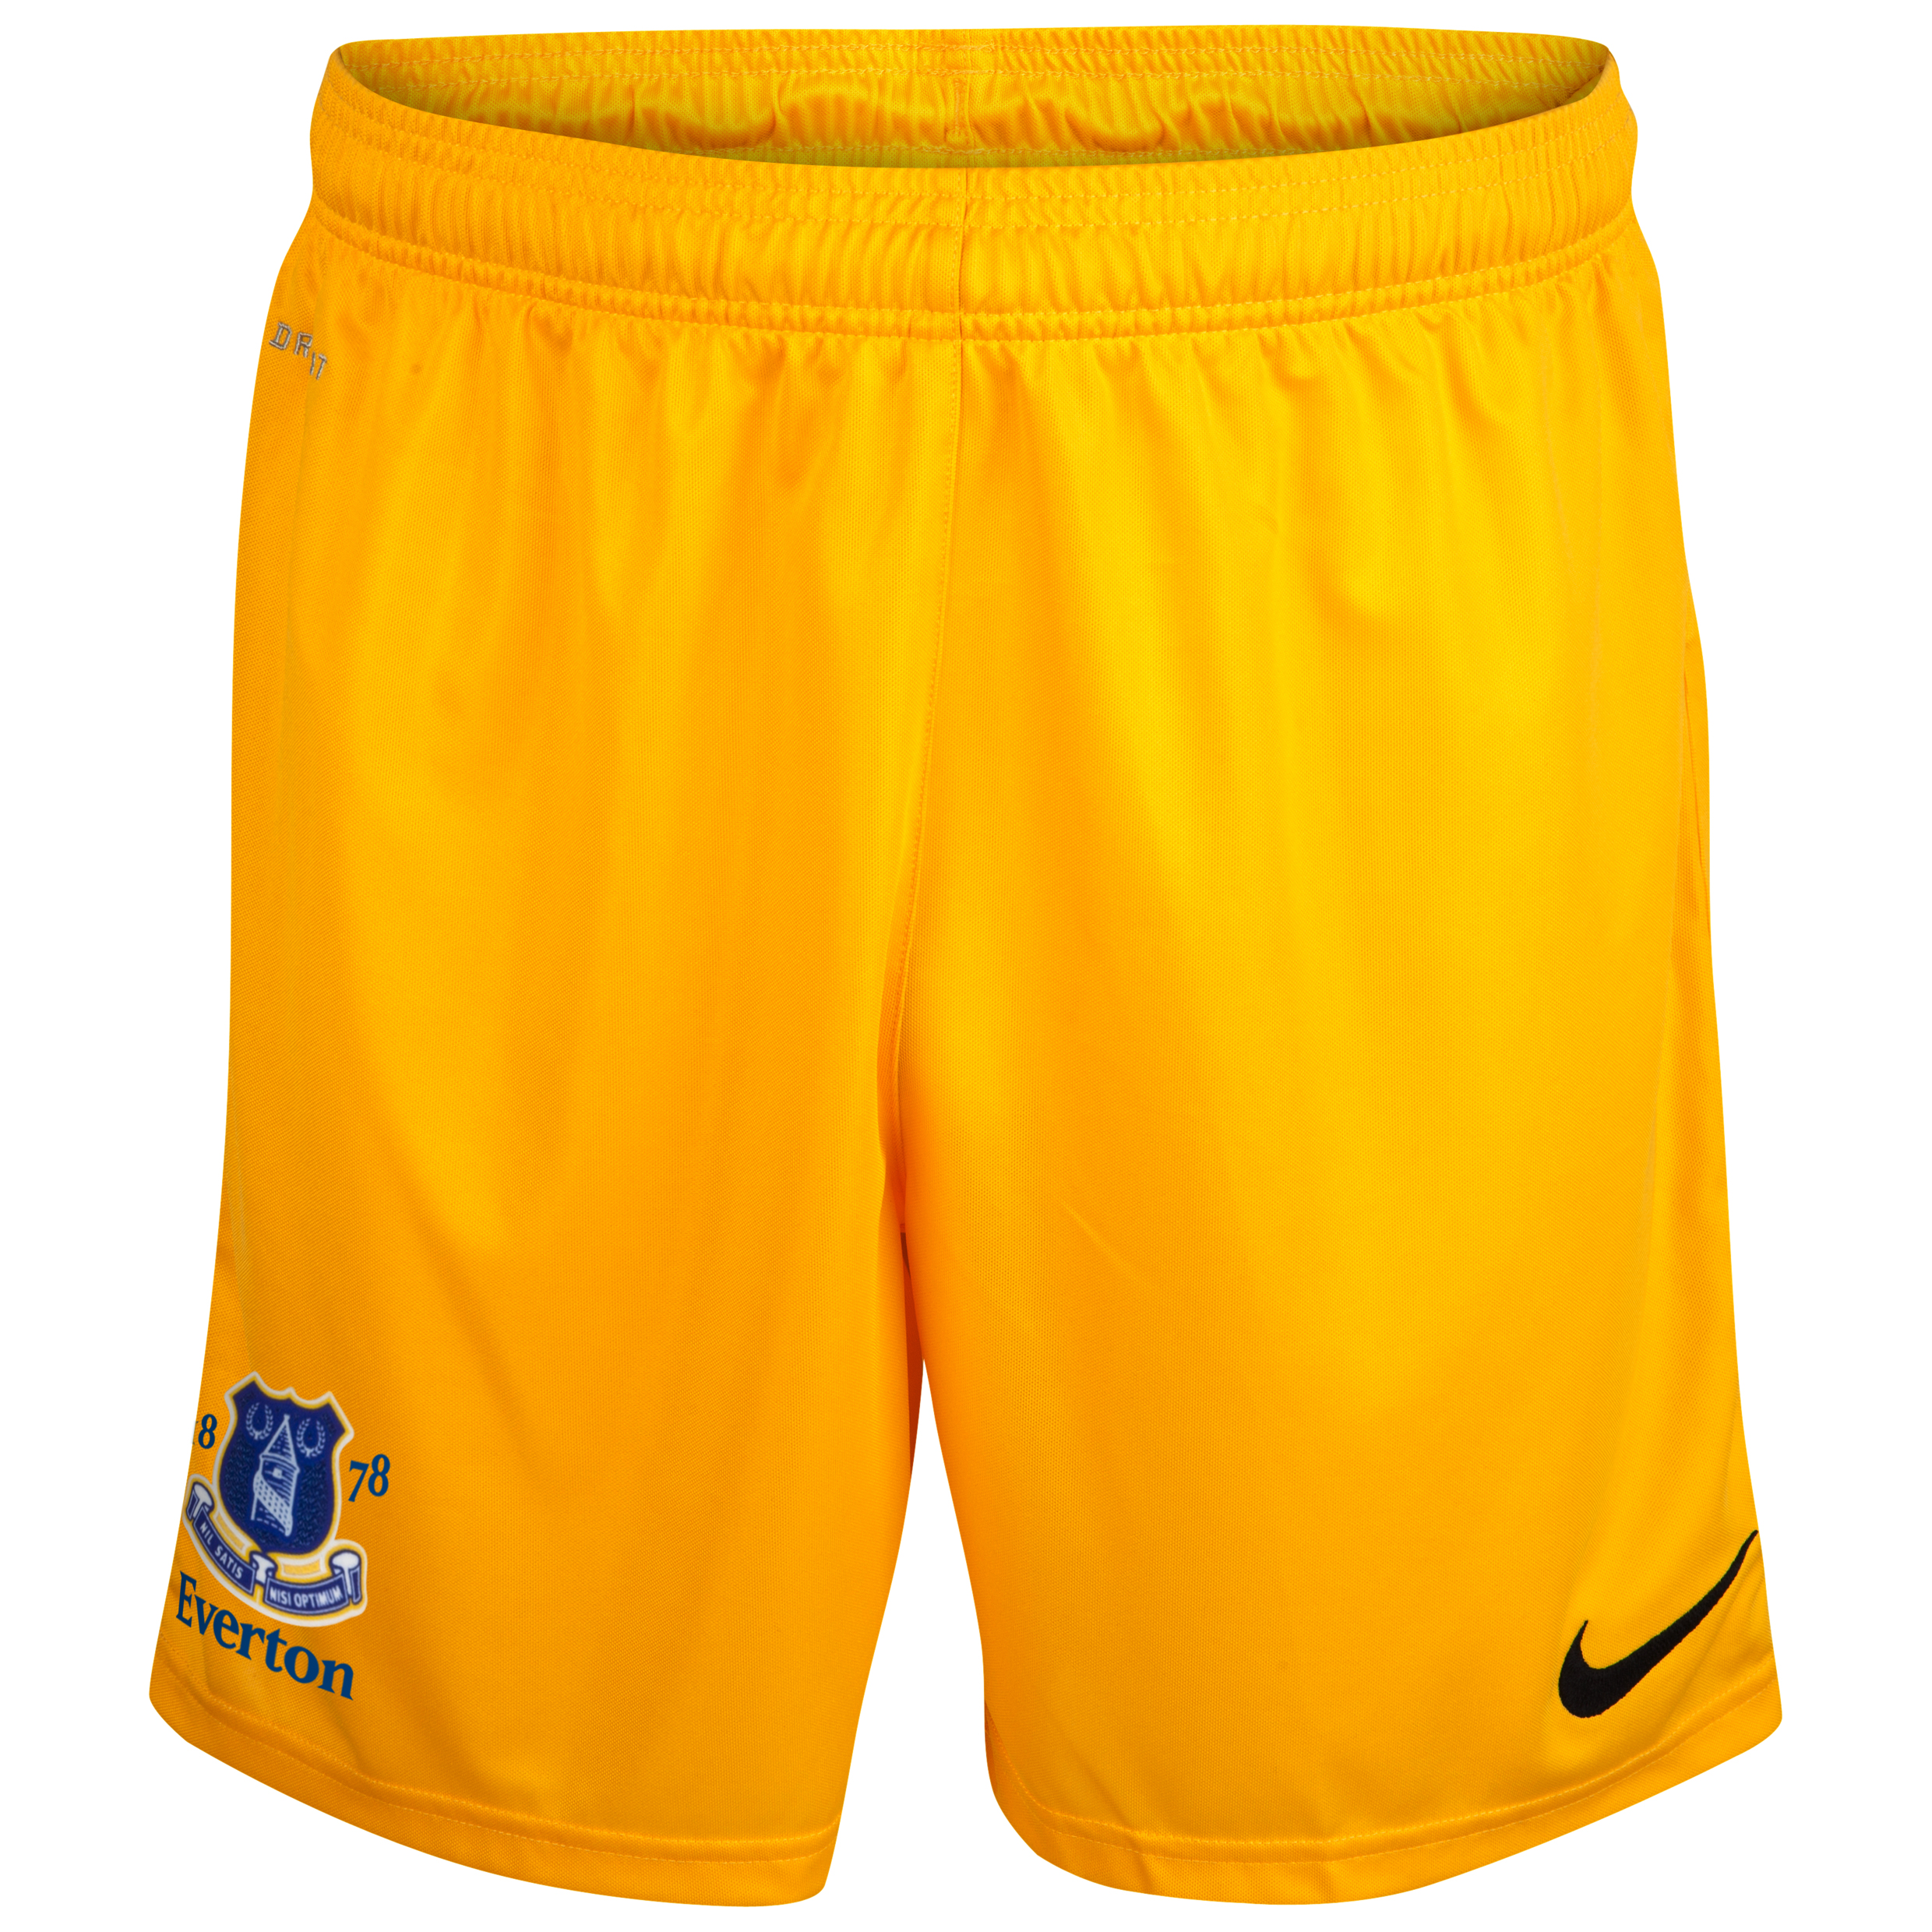 Everton Away Goalkeeper Short 2012/13